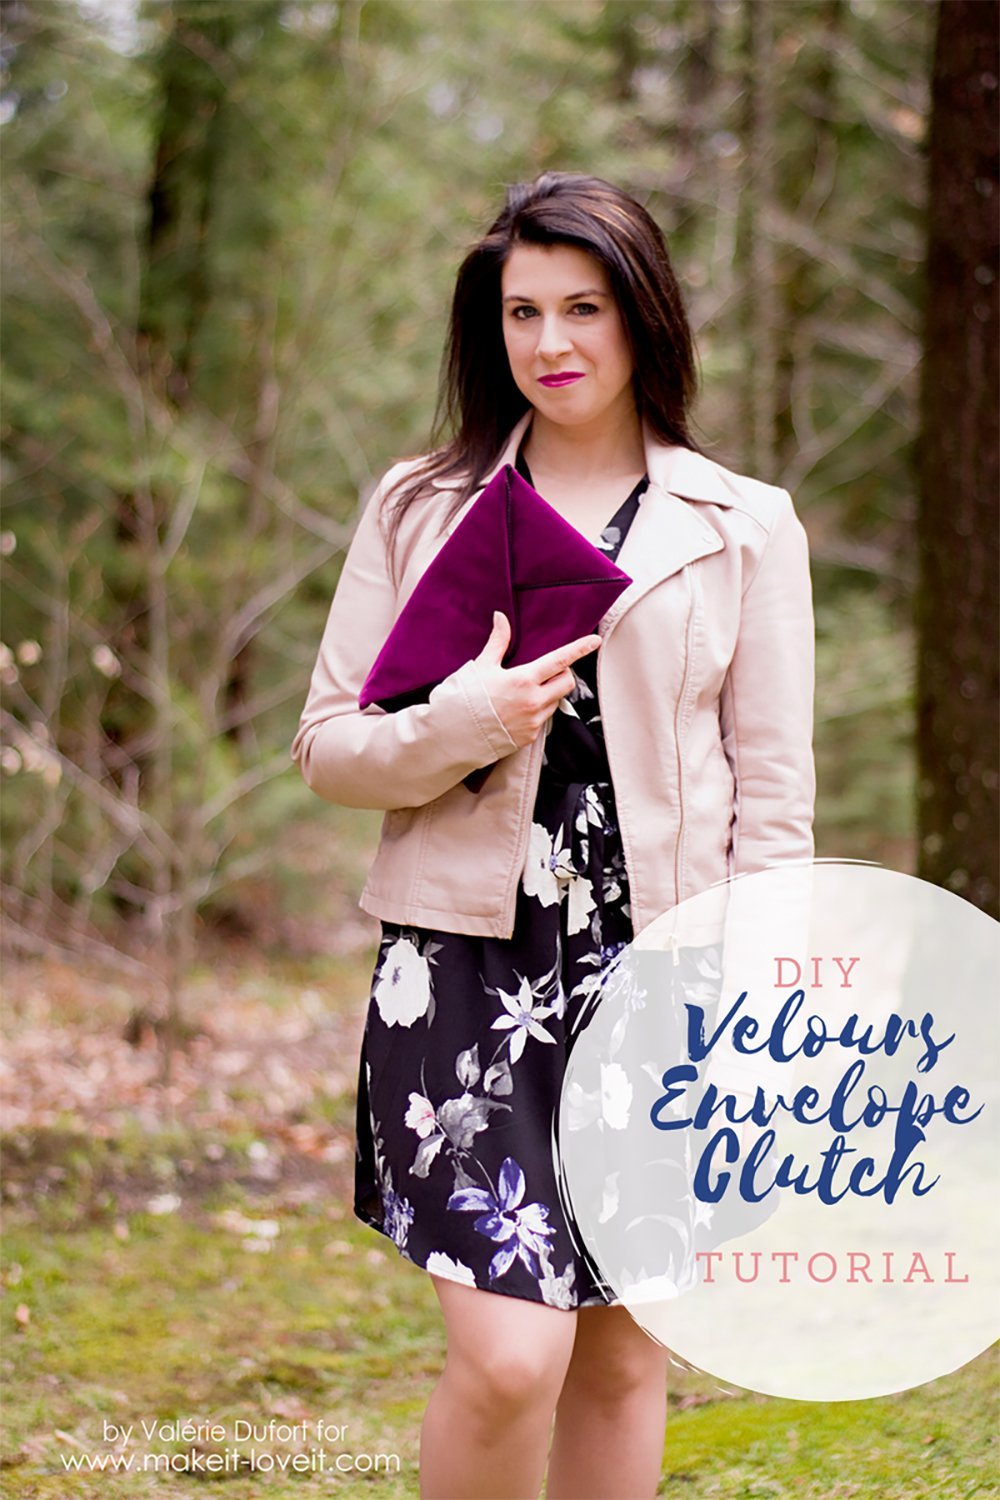 DIY Velours Envelope Clutch tutorial